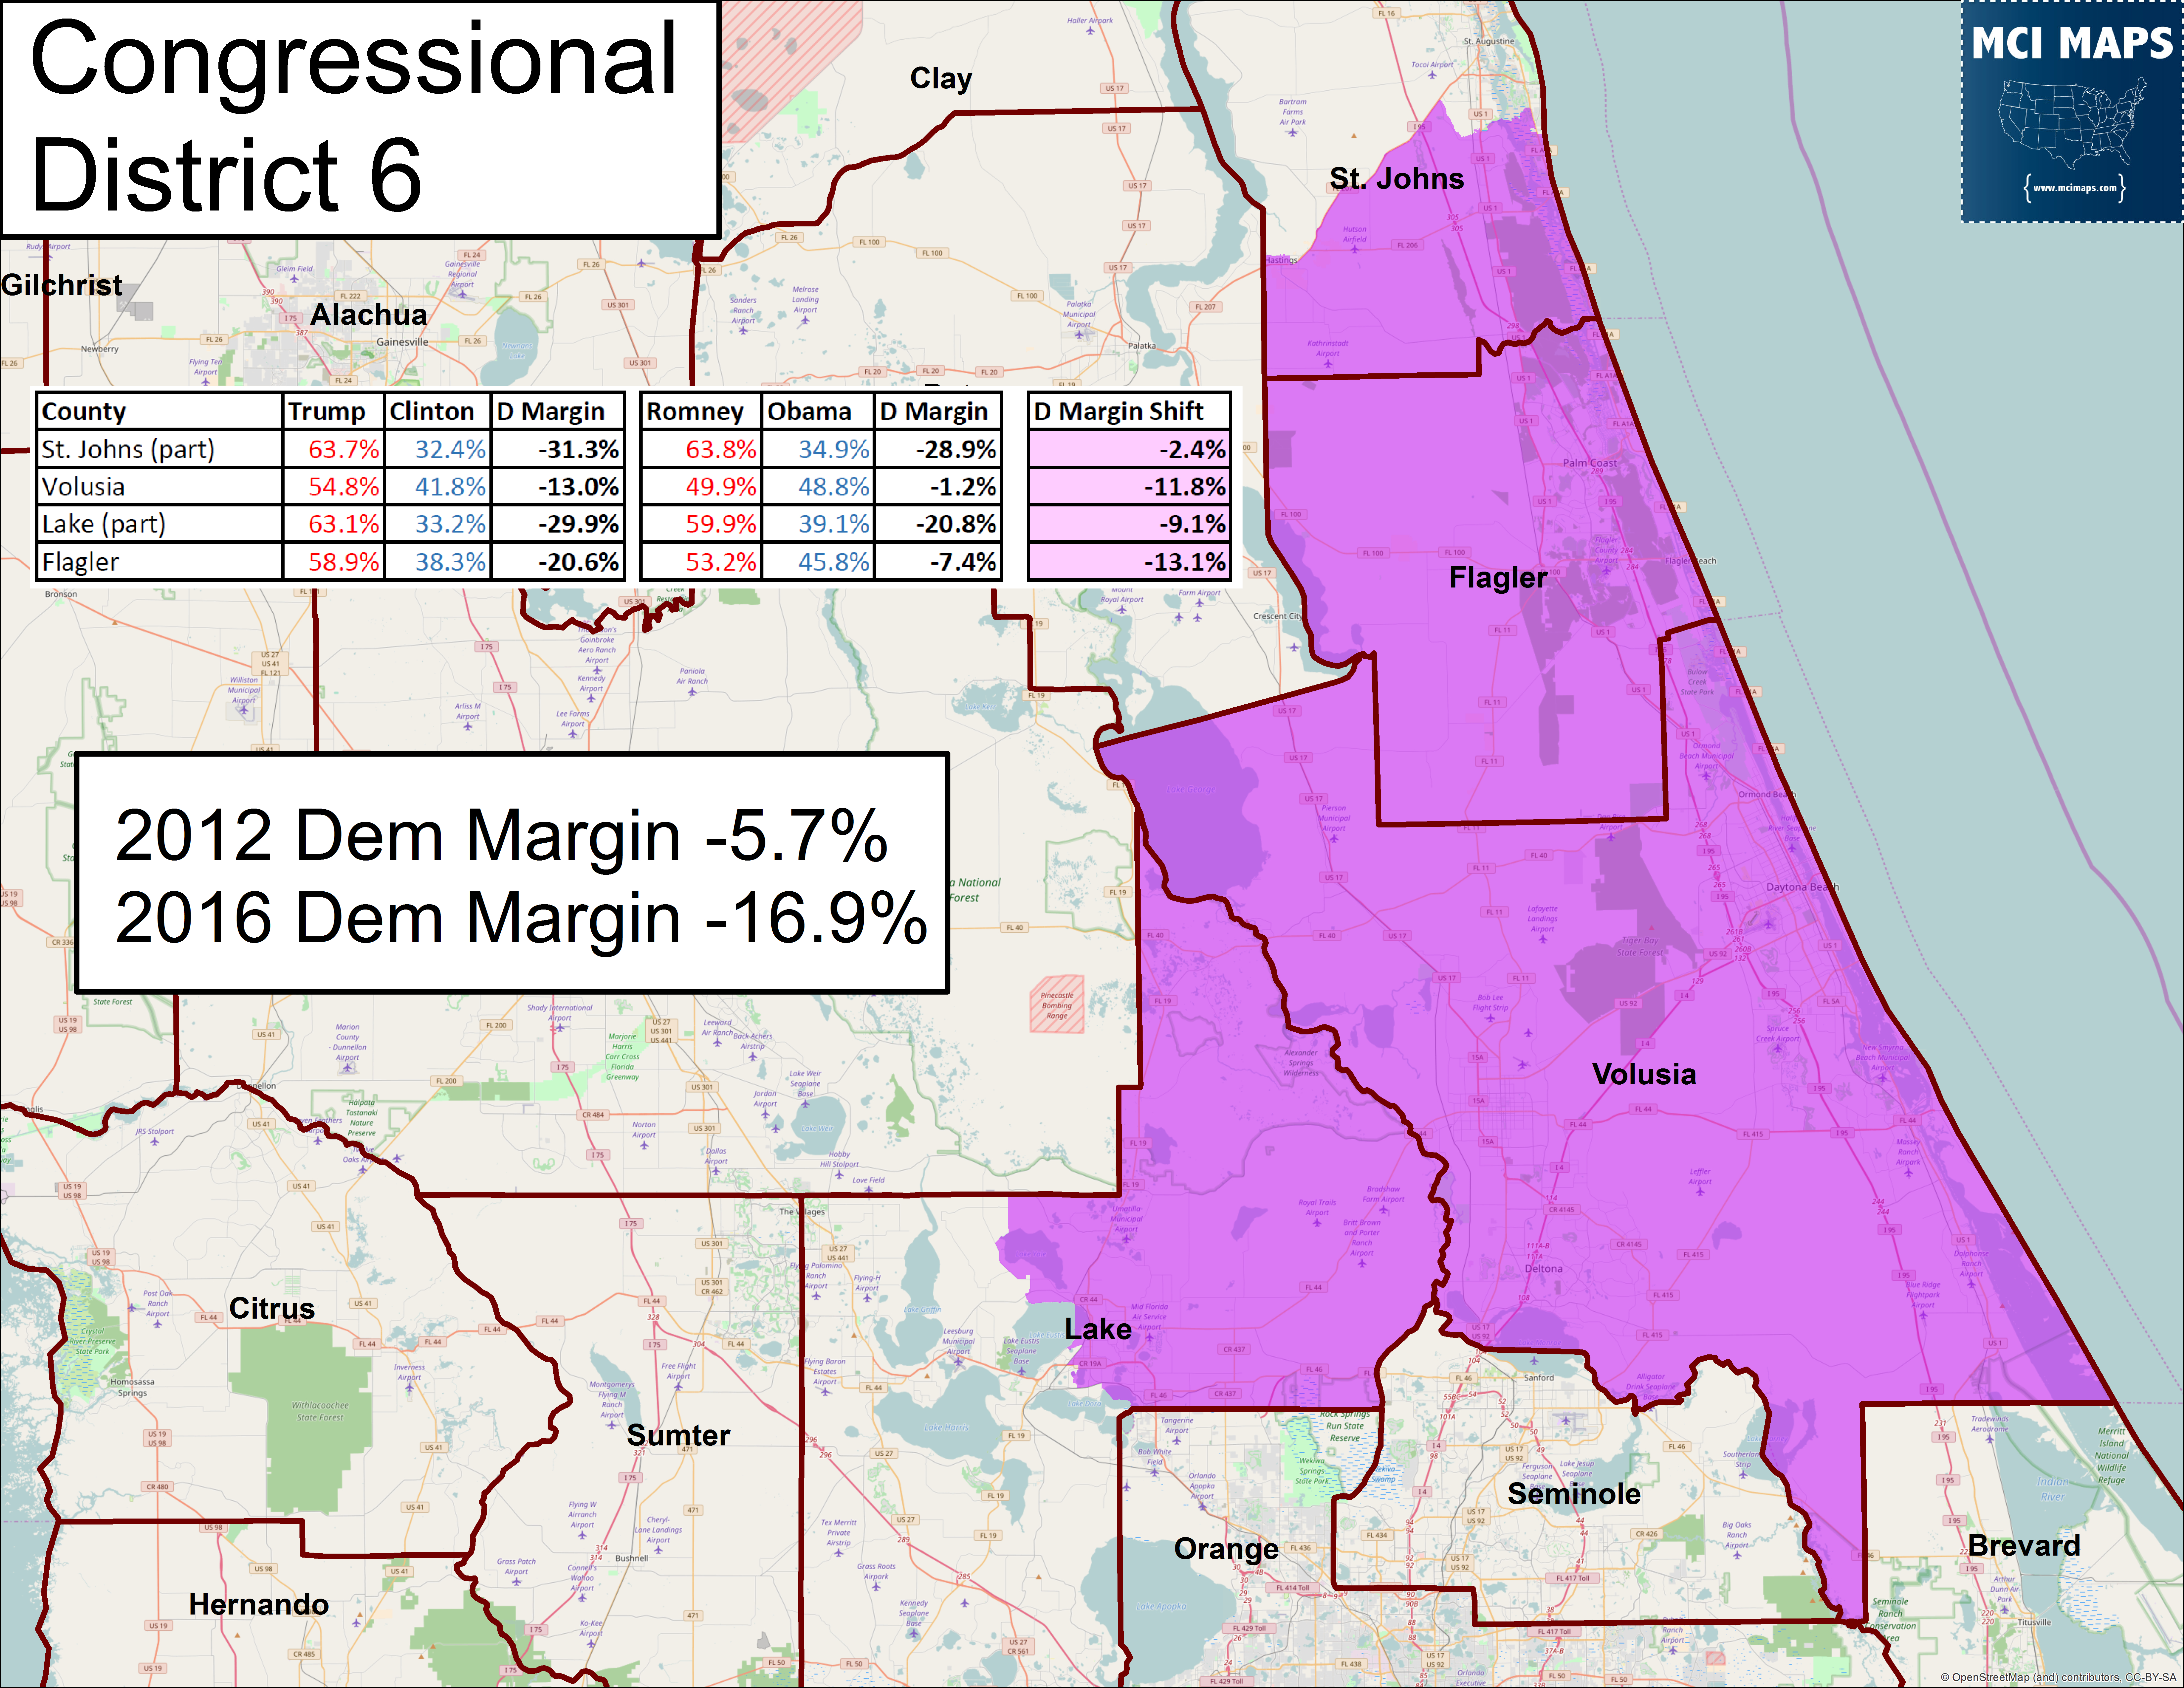 Florida's Congressional District Rankings For 2018 – Mci Maps - Florida District 6 Map